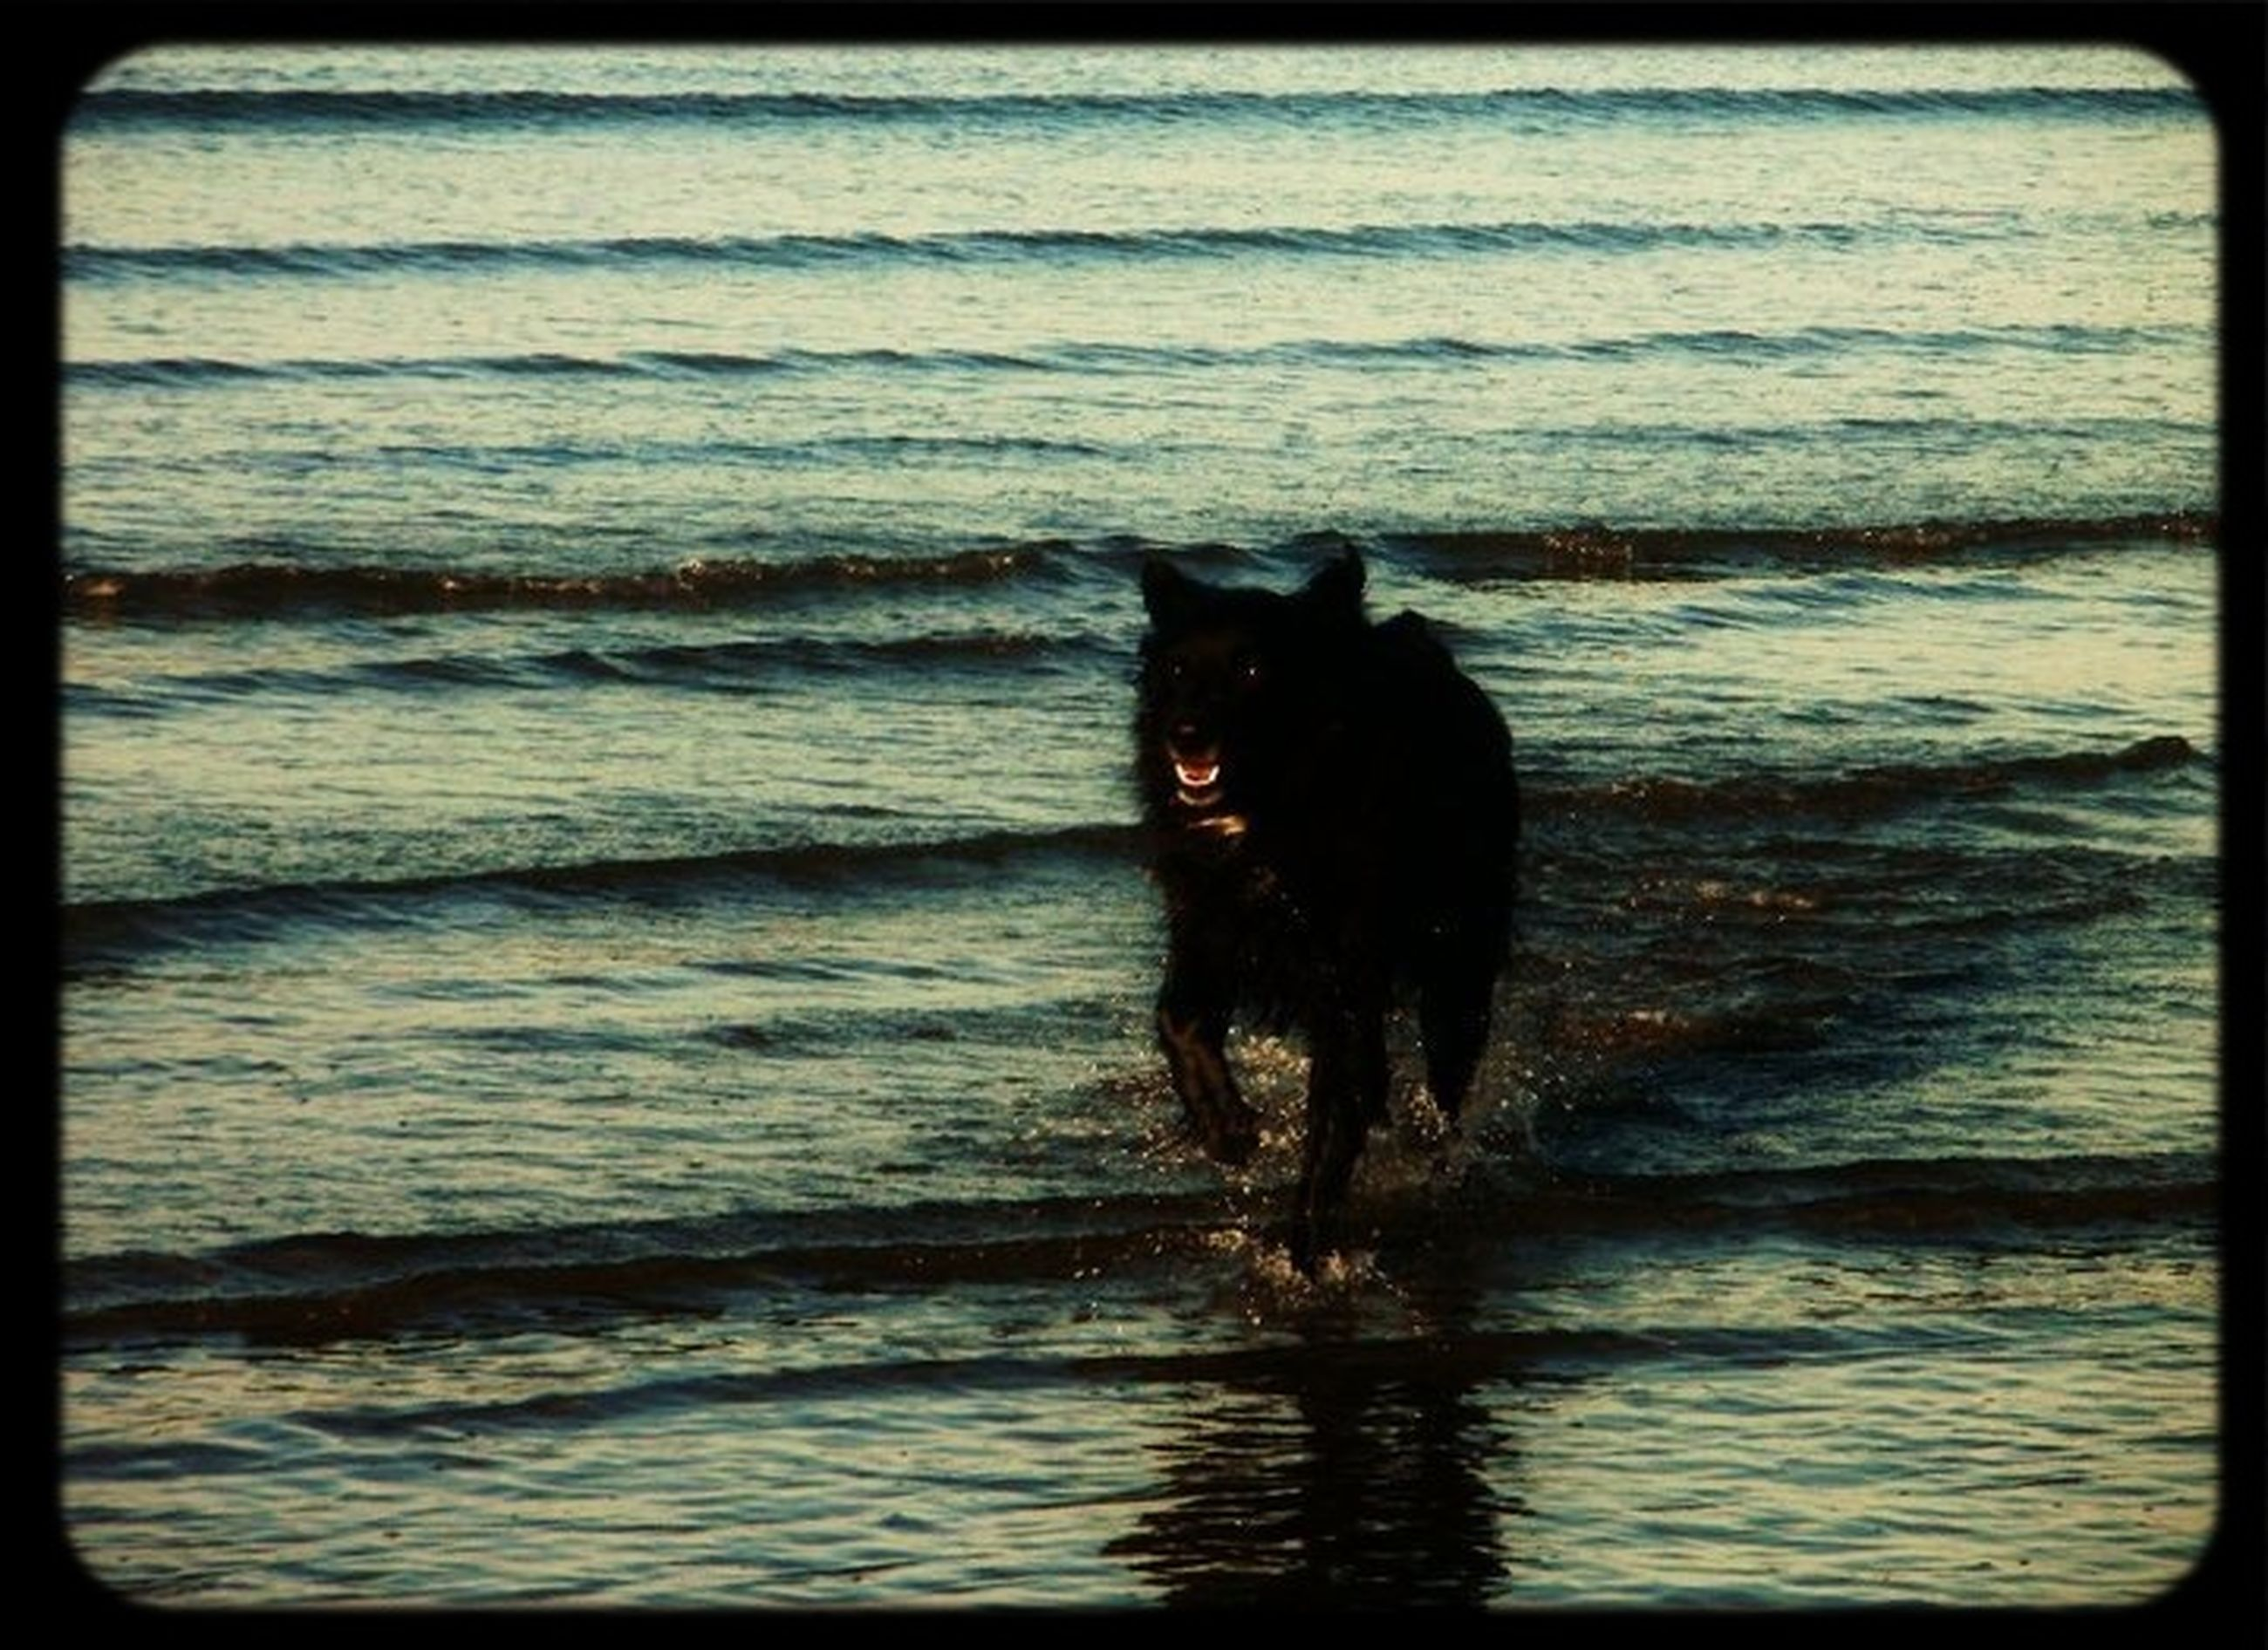 domestic animals, pets, animal themes, one animal, mammal, water, dog, sea, transfer print, black color, full length, auto post production filter, standing, beach, nature, shore, animal, side view, outdoors, no people